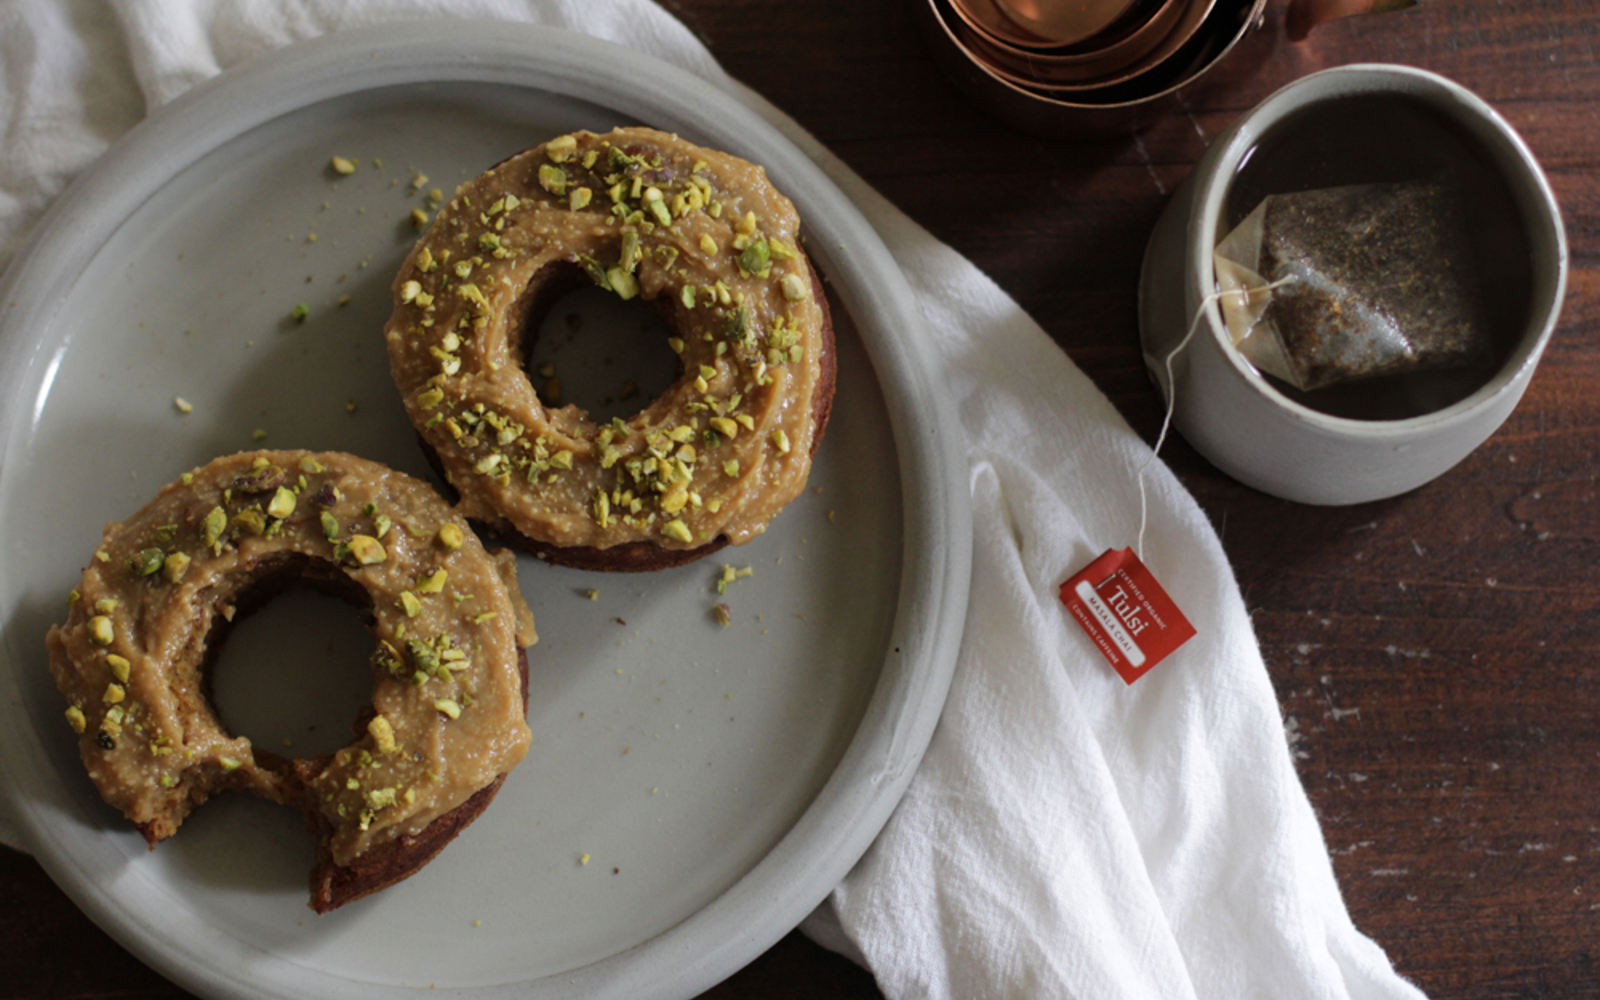 Vegan Gluten-Free Maple-Glazed Pumpkin Spiced Doughnuts with nut topping